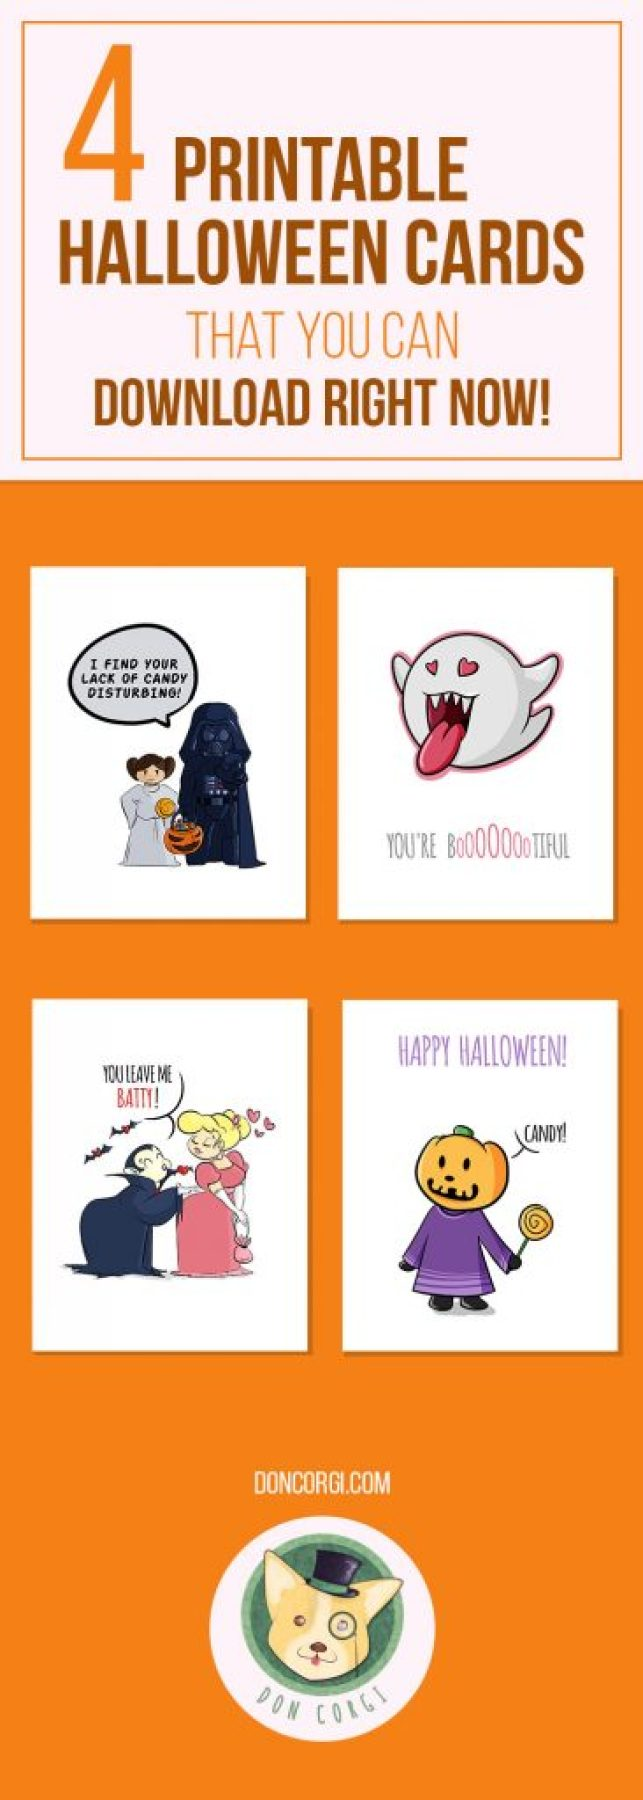 Printable Halloween Cards to Download on Etsy by Don Corgi